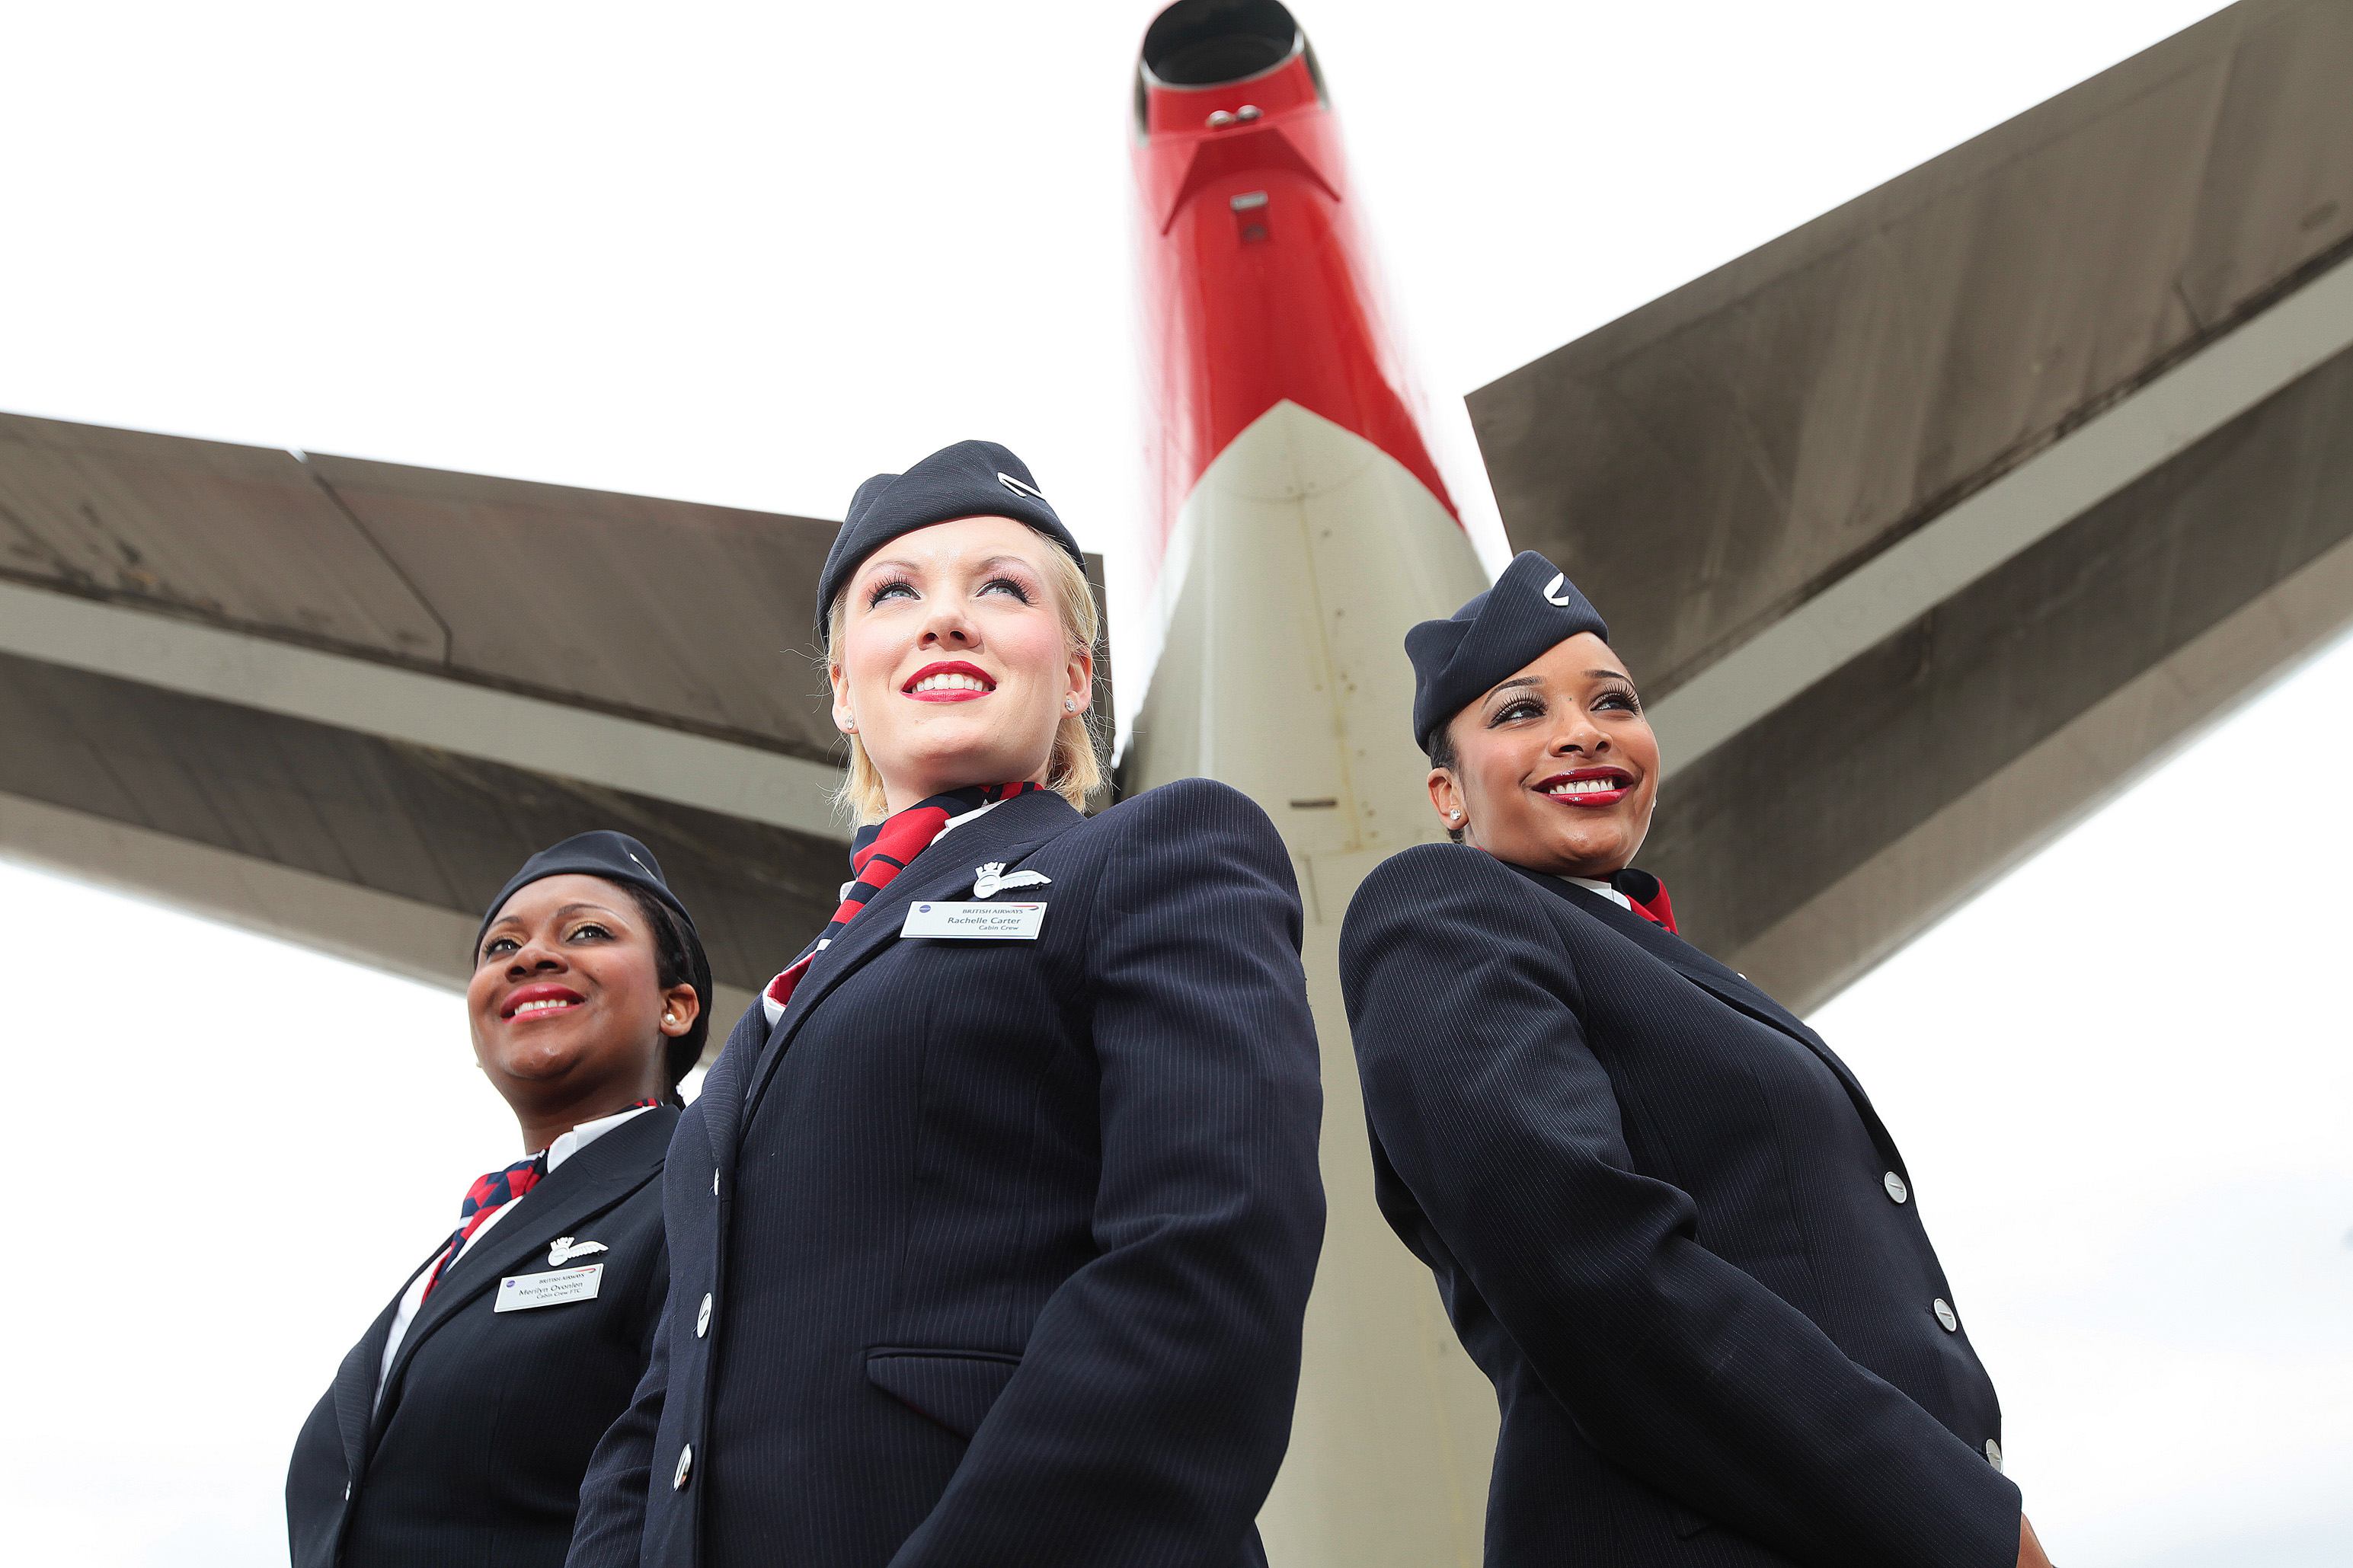 cabin crew dating uk